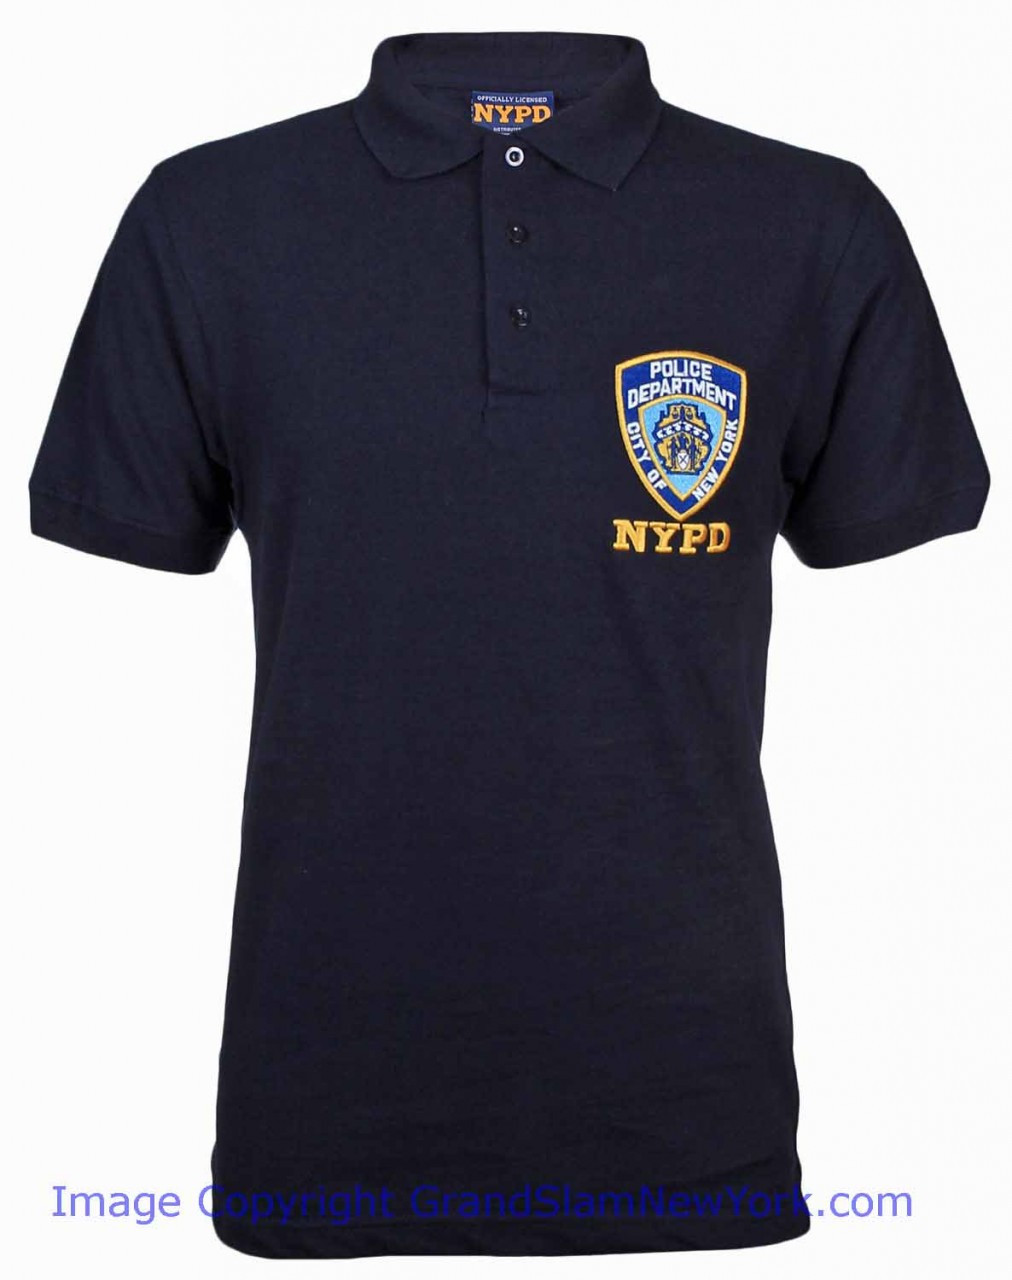 708c68f6 NYPD Polo Shirt - Navy with Official Badge